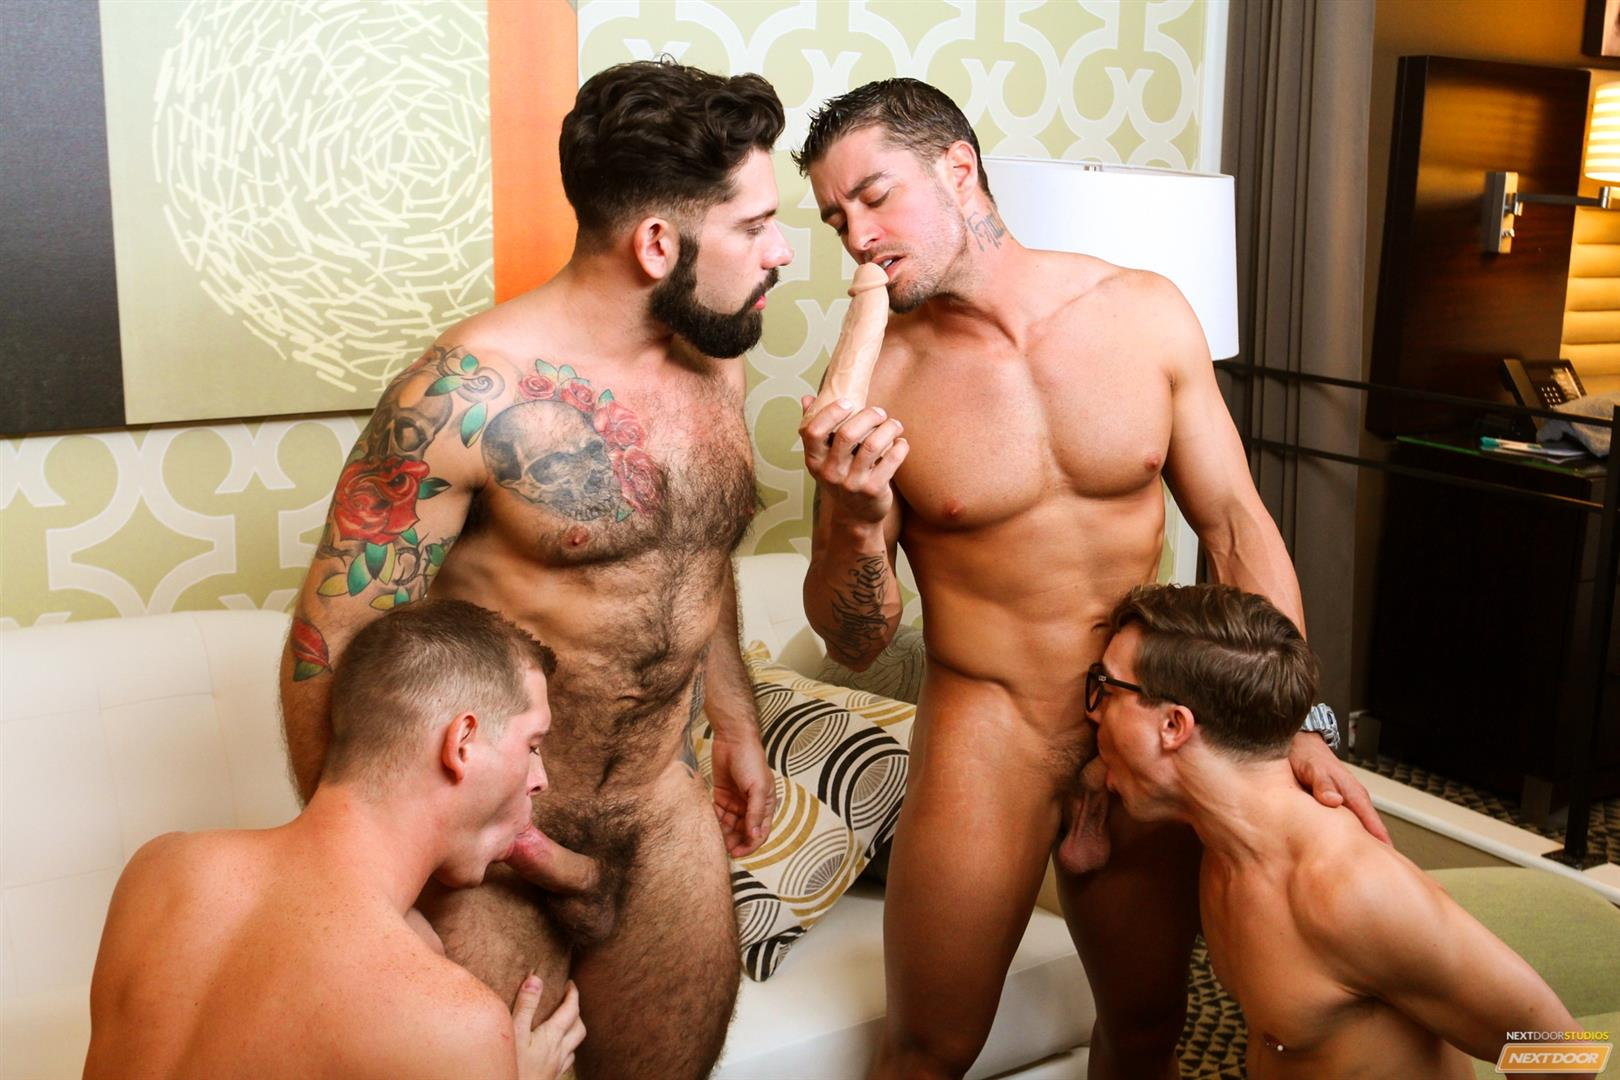 Cody-Cummings-and-Tyler-Morgan-and-Alessandro-Del-Torro-Cock-Sucking-Lessons-Amateur-Gay-Porn-14 Cody Cummings Gives The Boys Cock Sucking Lessons